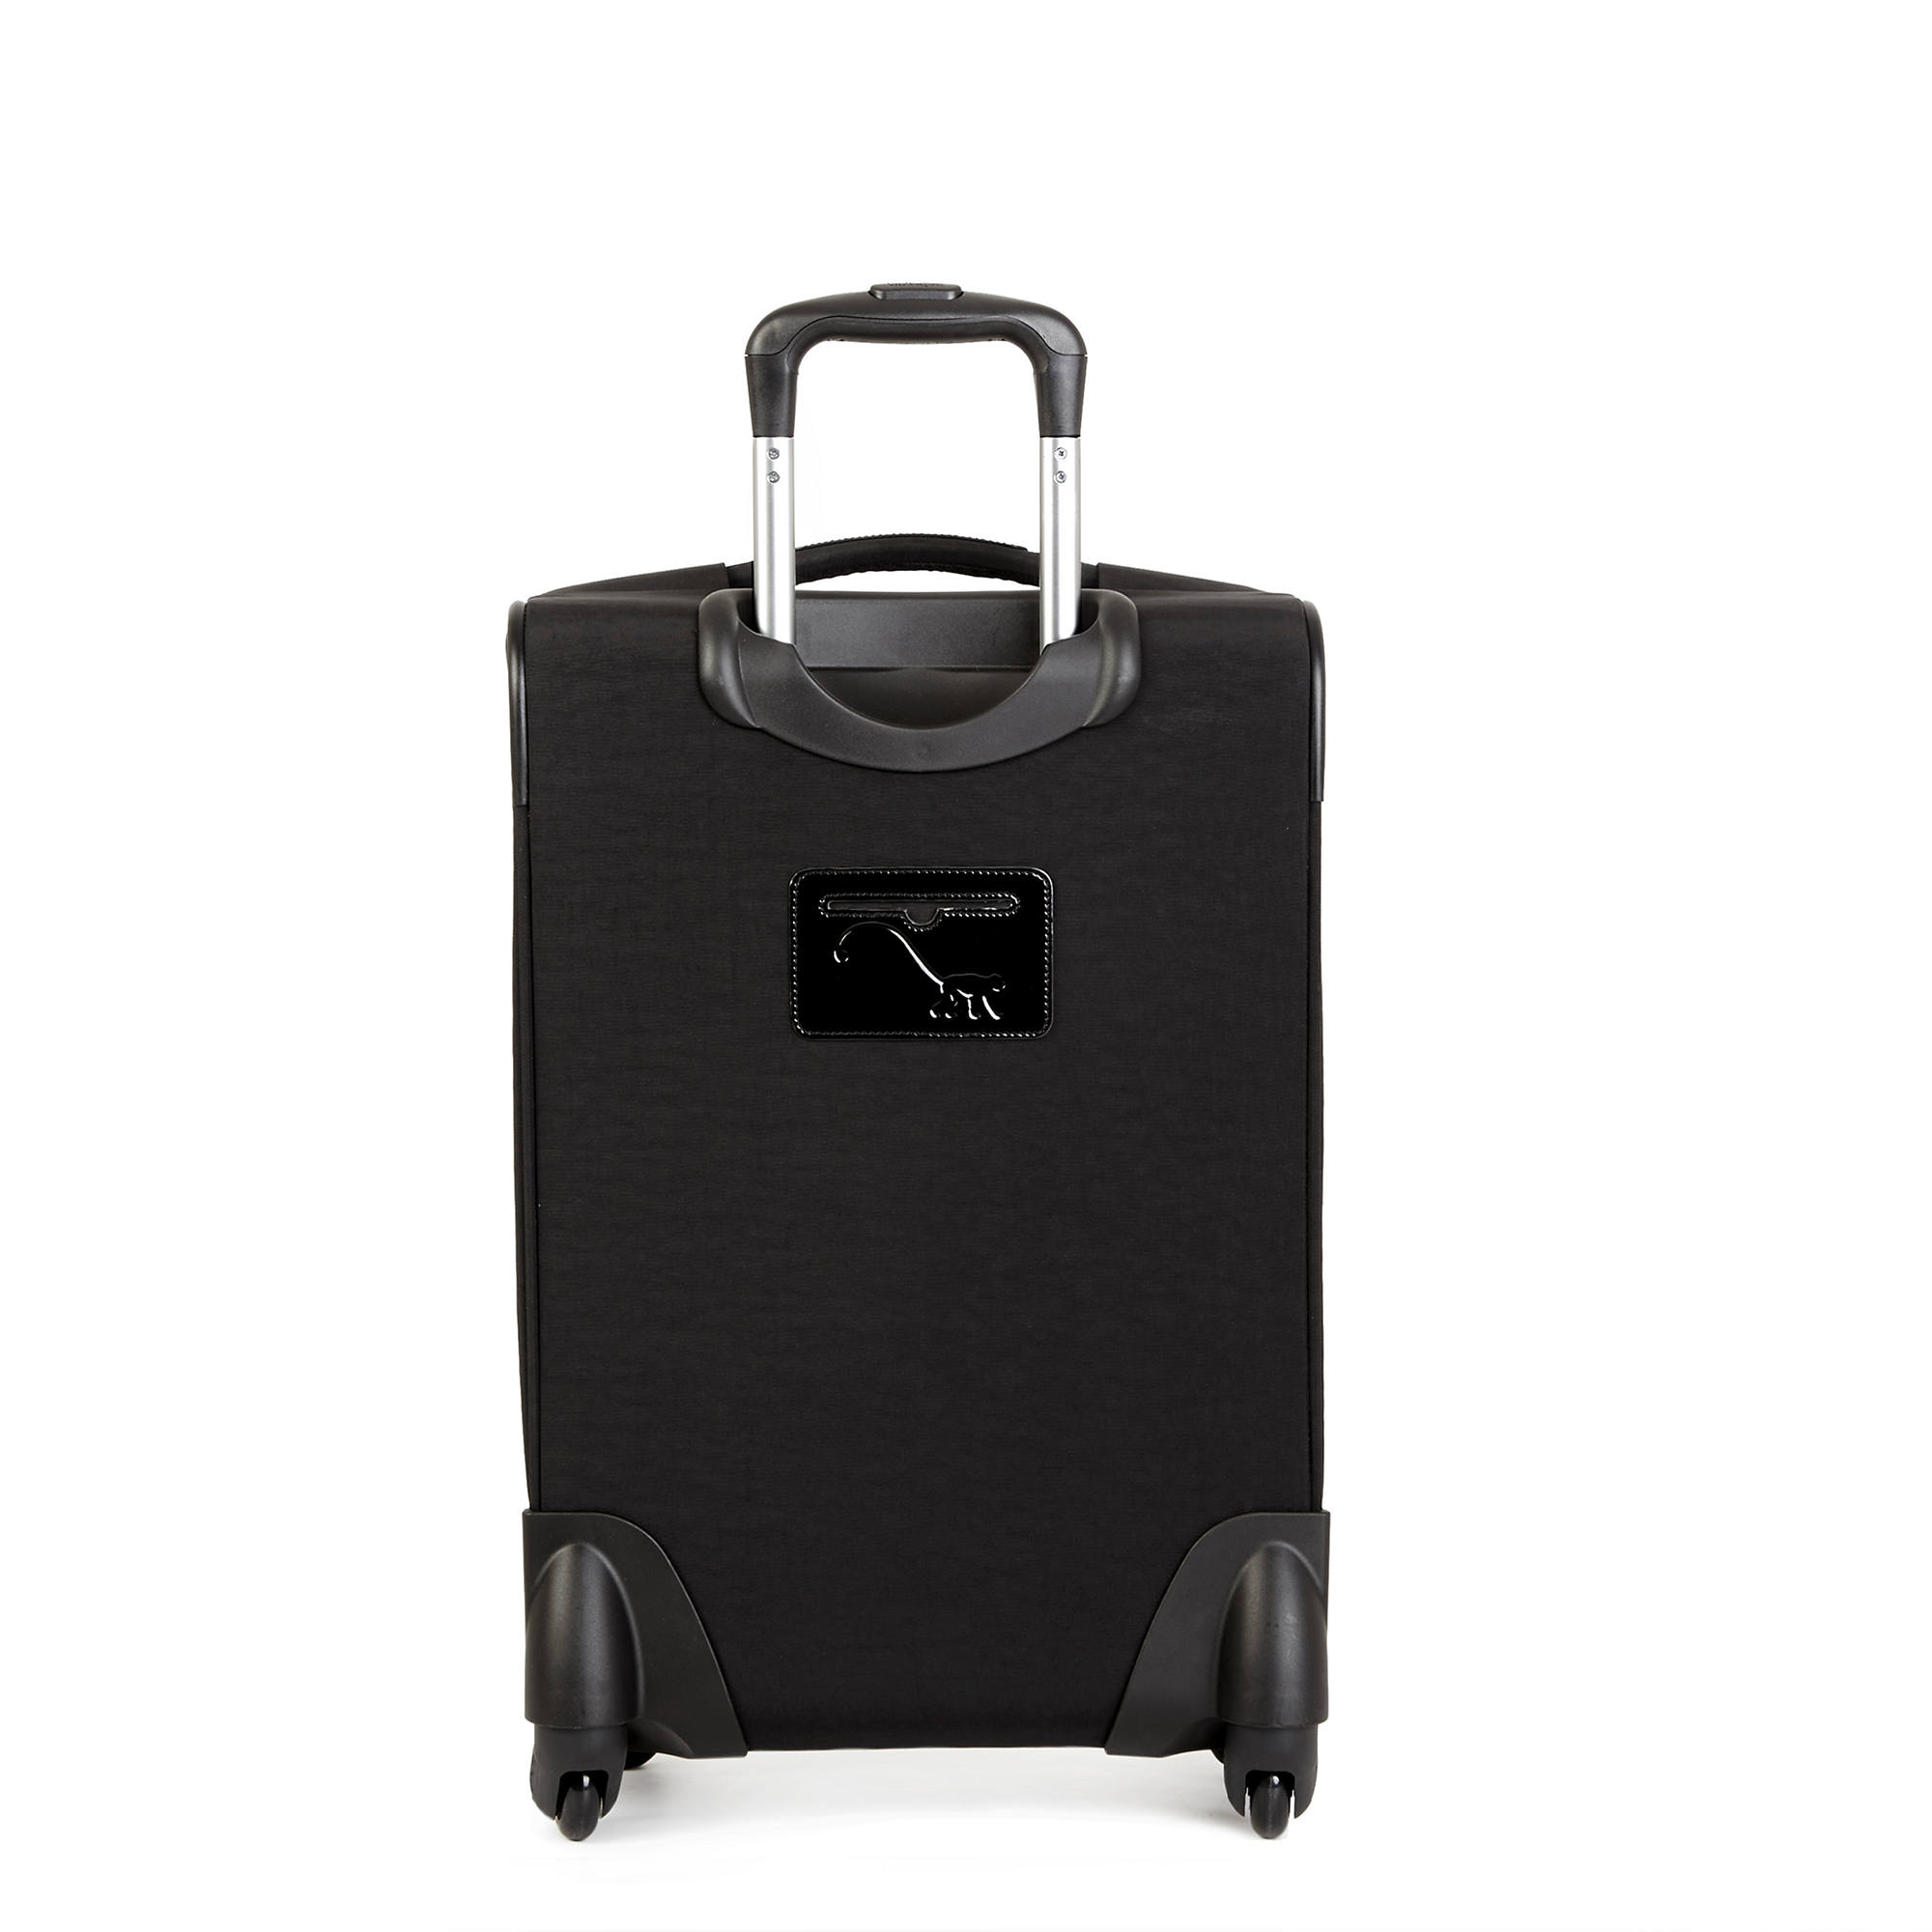 Ronan Carry-On Rolling Luggage | Kipling